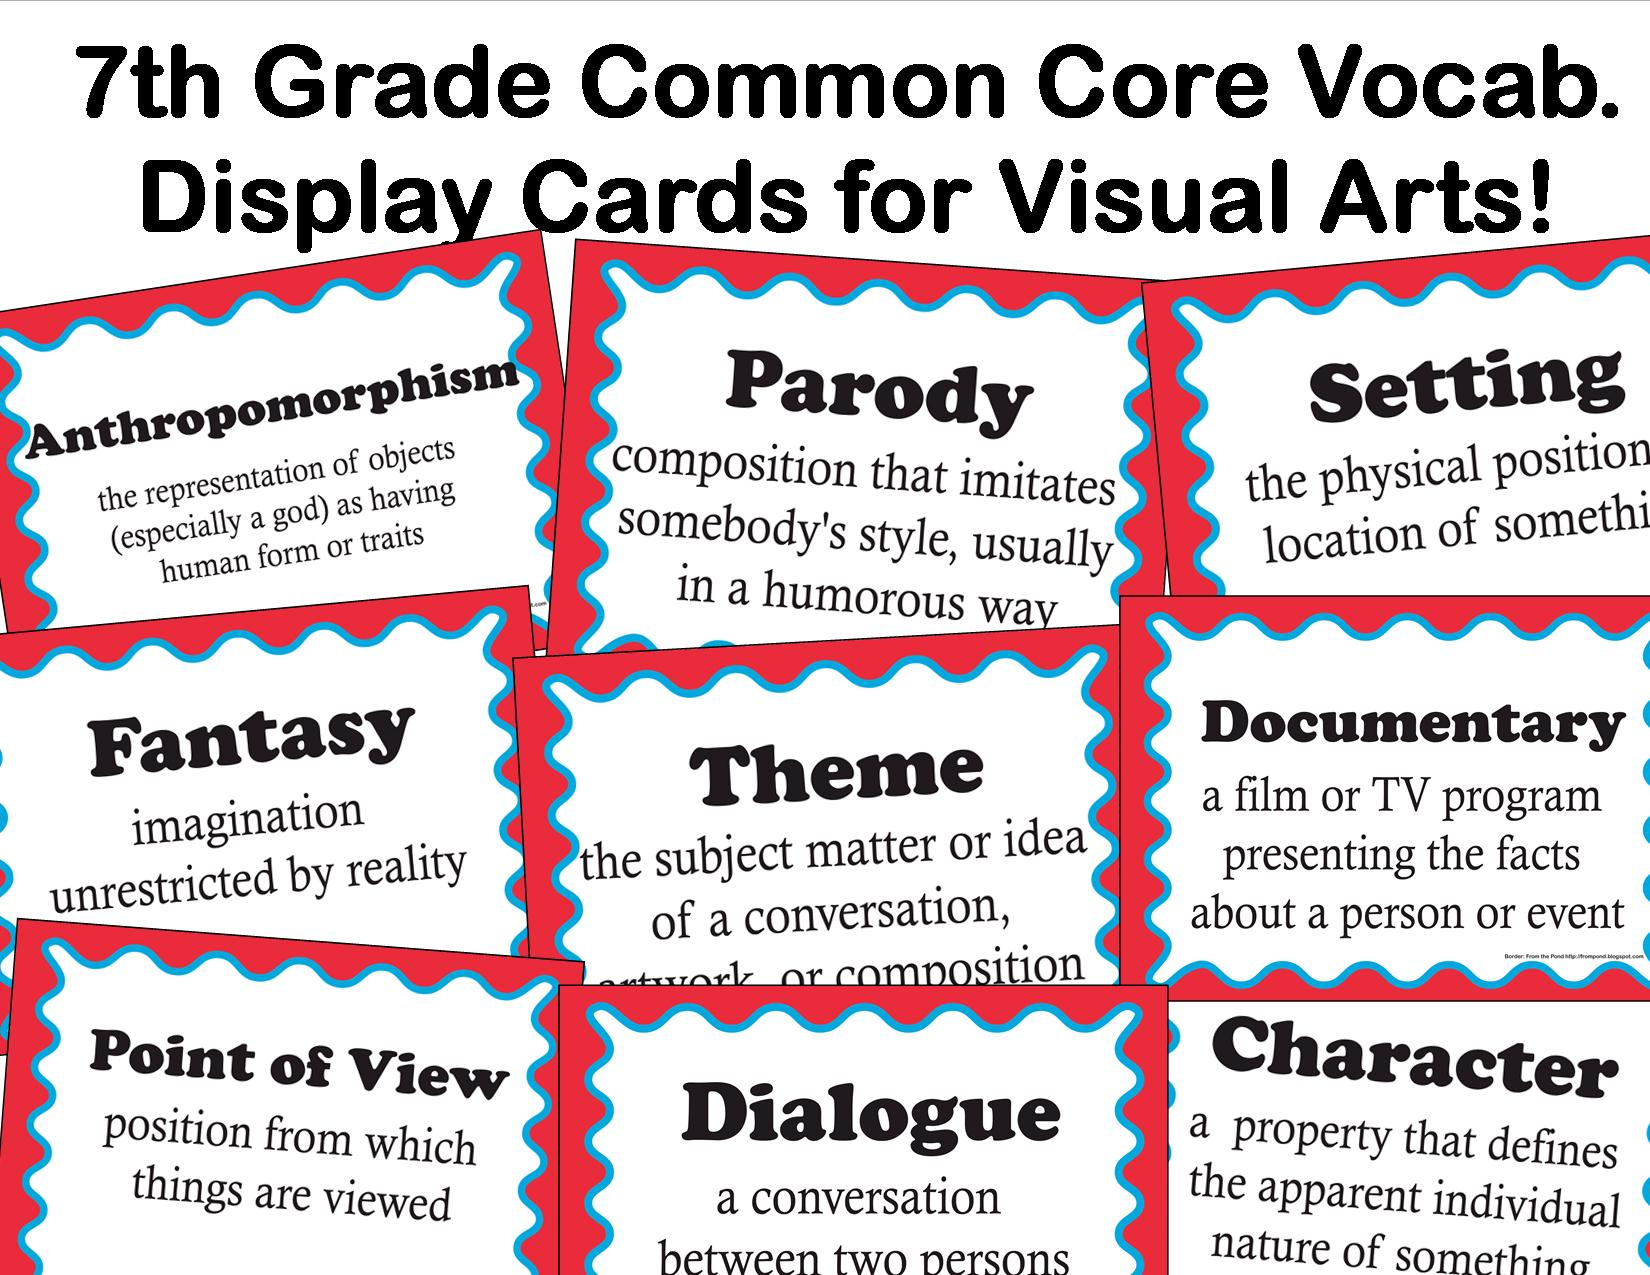 The Smartteacher Resource Common Core Language Arts Vocabulary For Visual Arts For 7th Grade